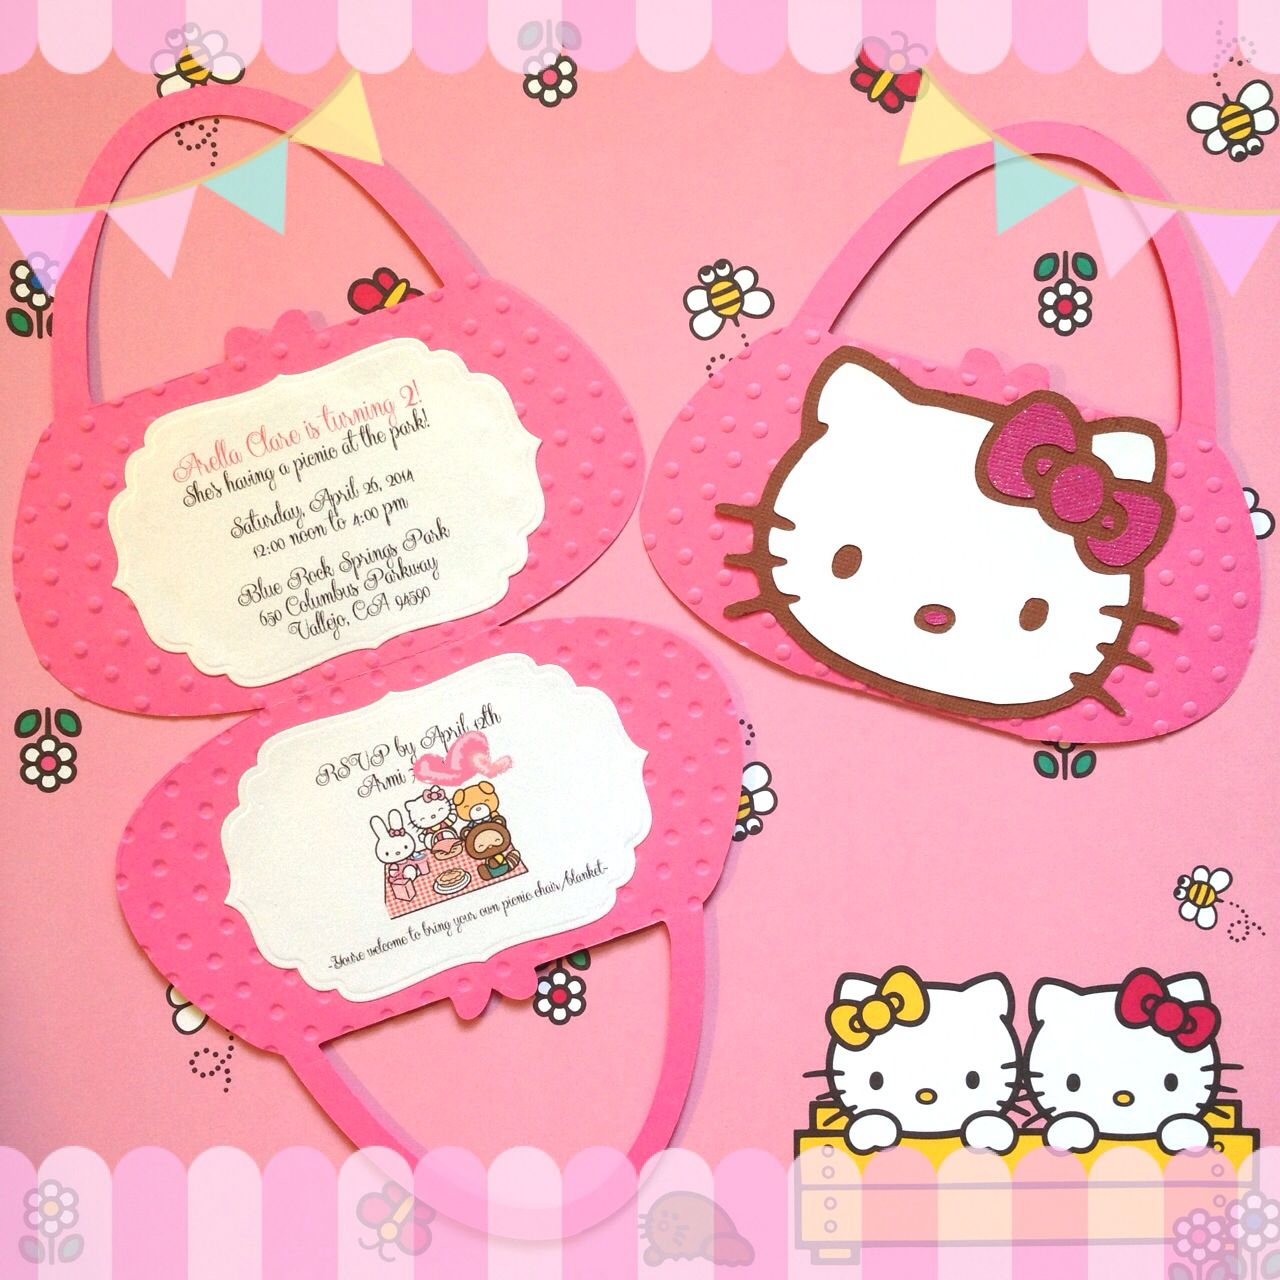 hello kitty invitations hello kitty party kitty hello kitty purse invitation